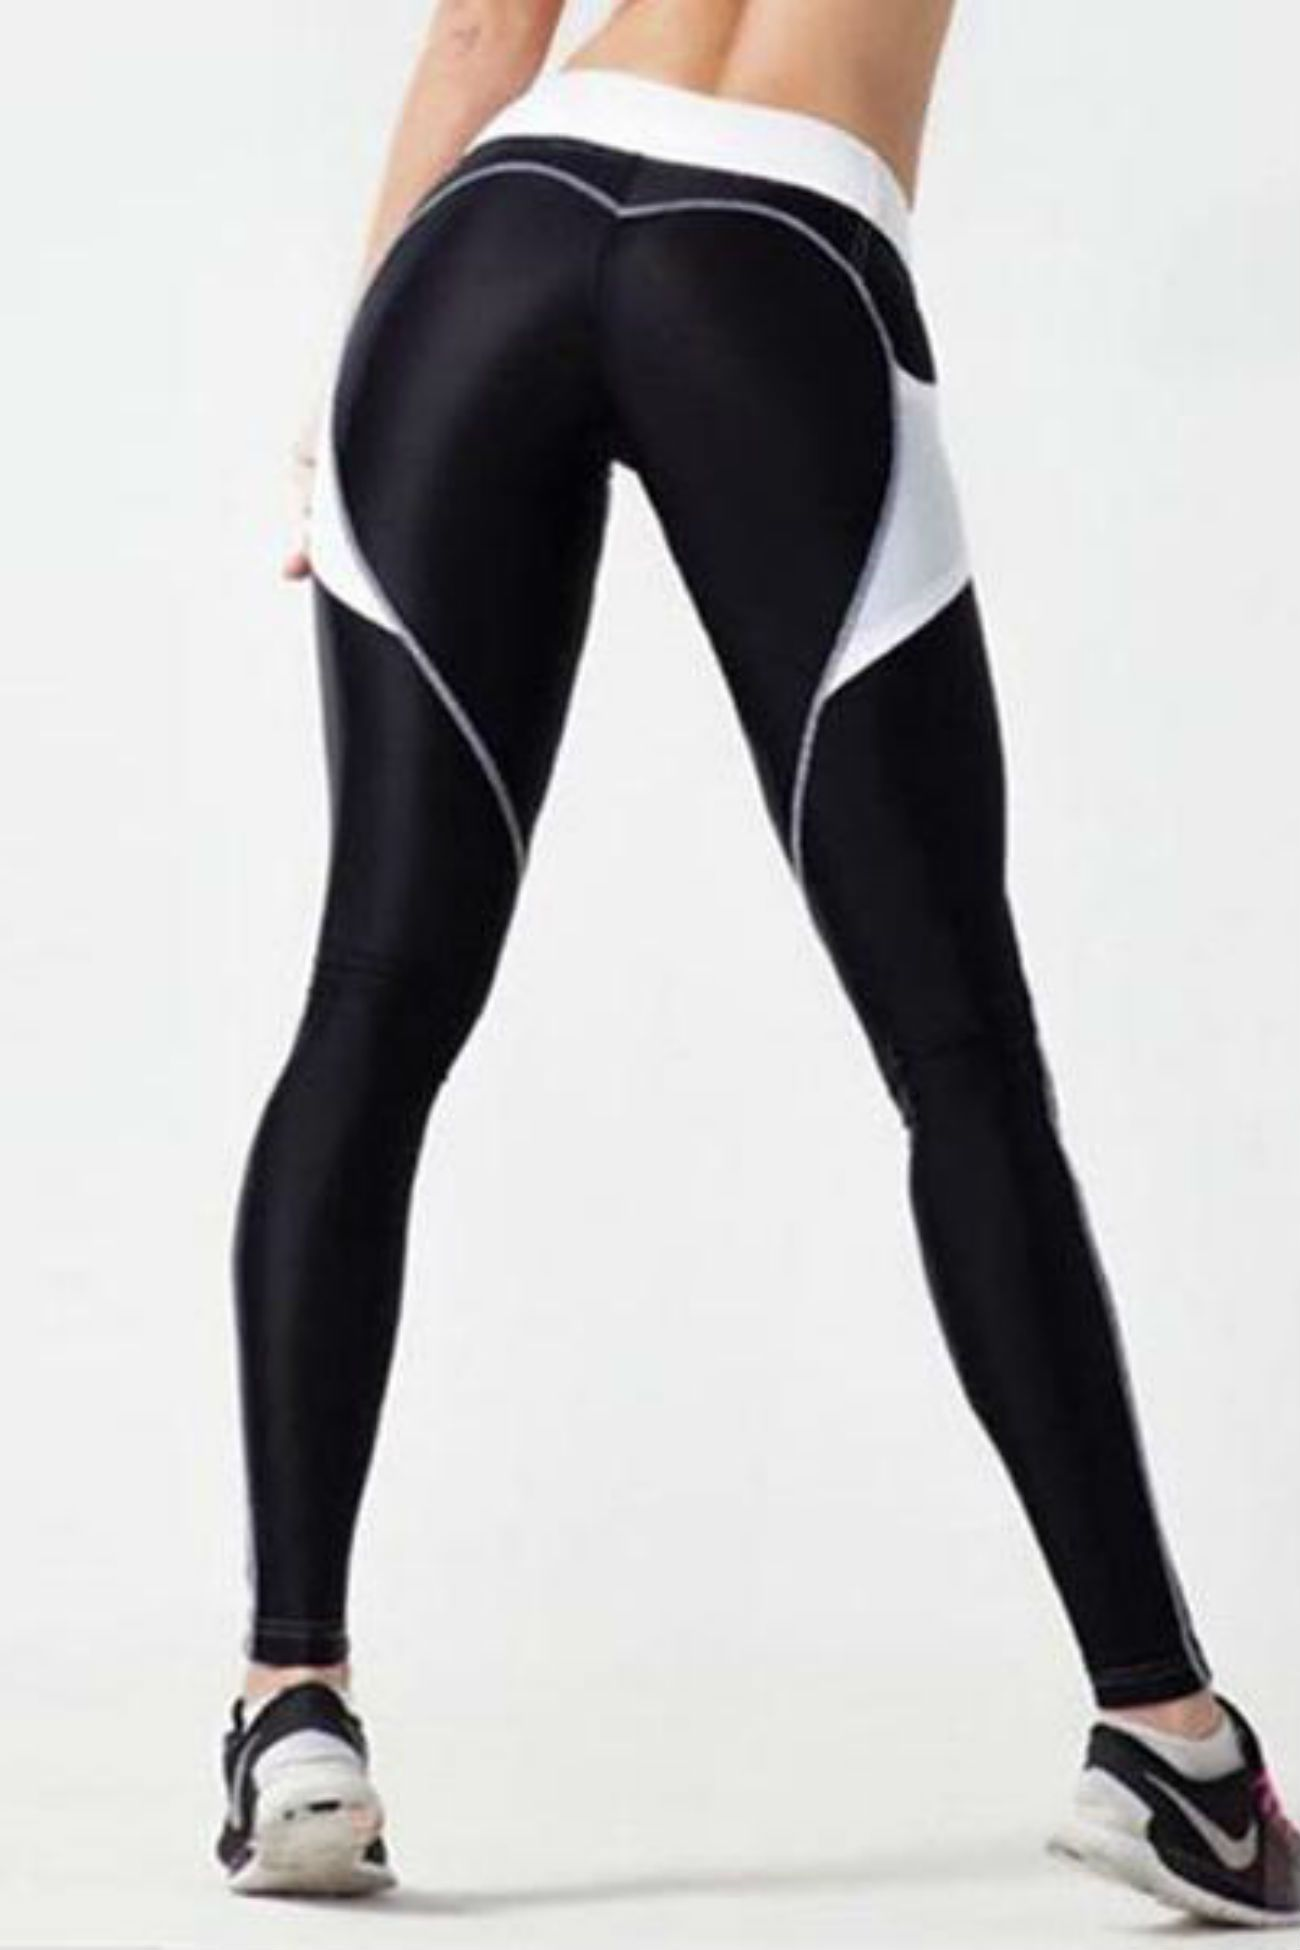 Pocket Heart Booty Leggings <br>Black/White - Muscle Fitness Factory